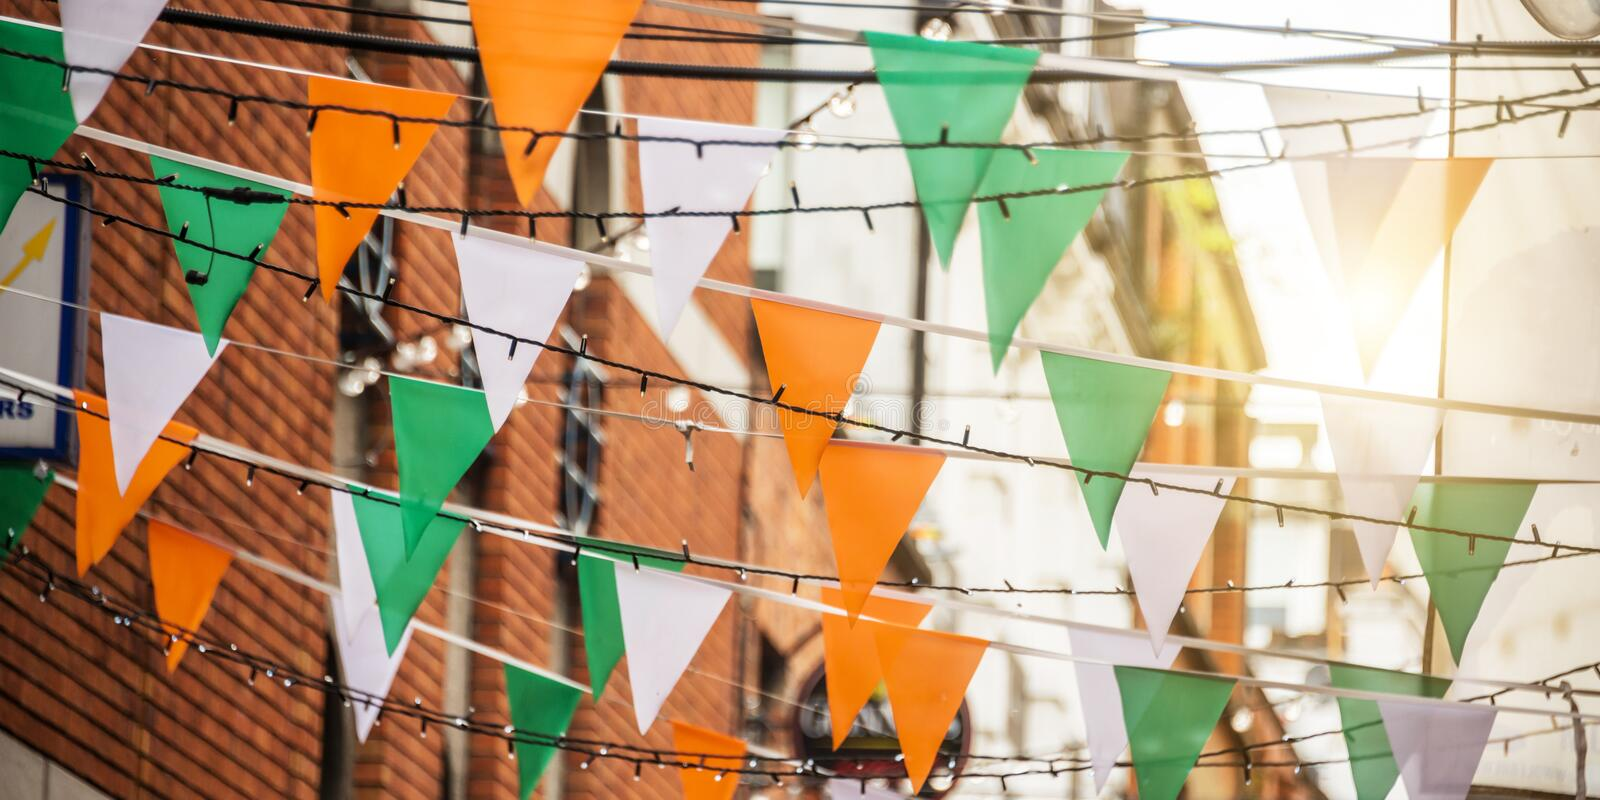 Garland with irish flag colors in a street of Dublin Ireland - Saint Patrick day celebration concept royalty free stock photos